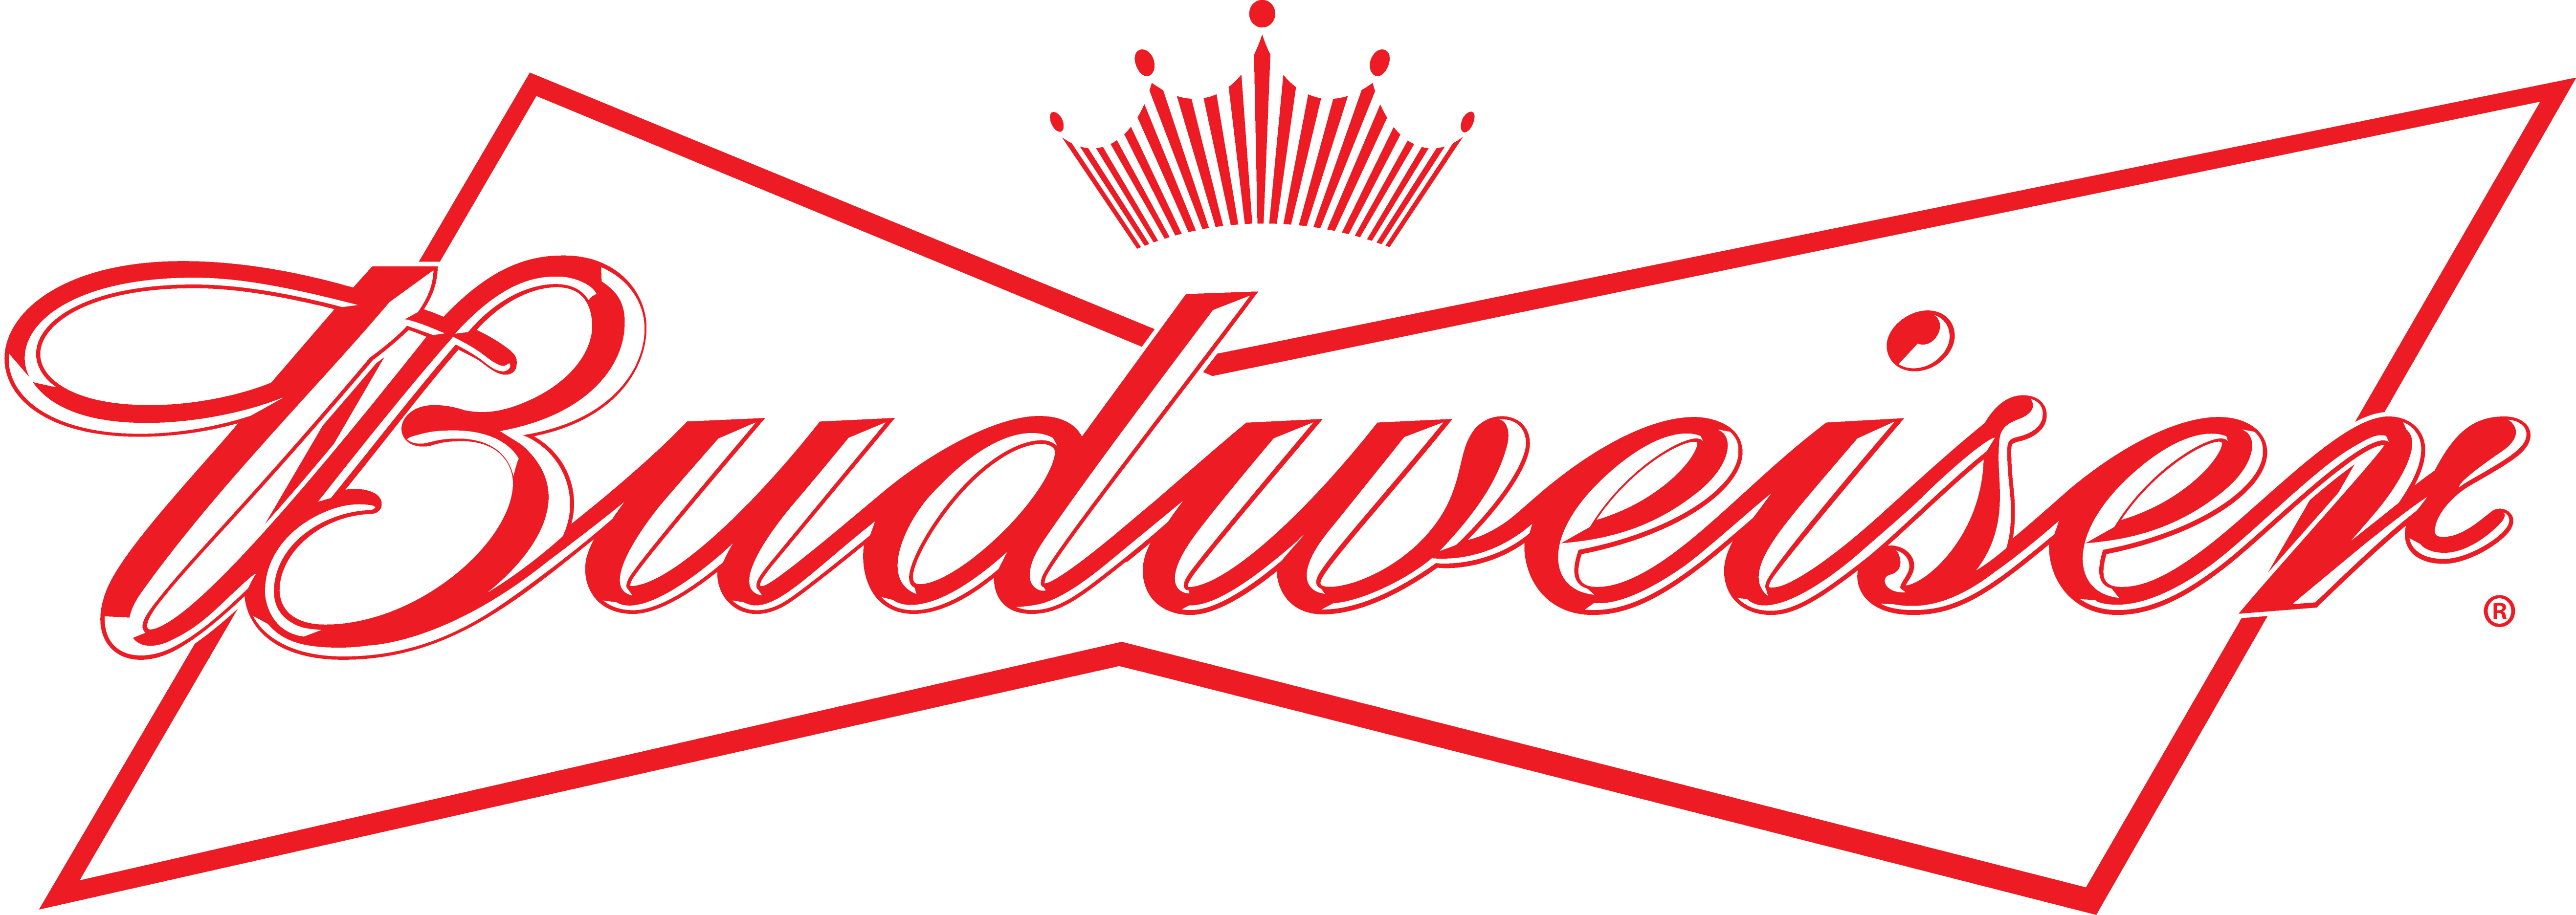 Budweiser Logo Vector at GetDrawings.com.